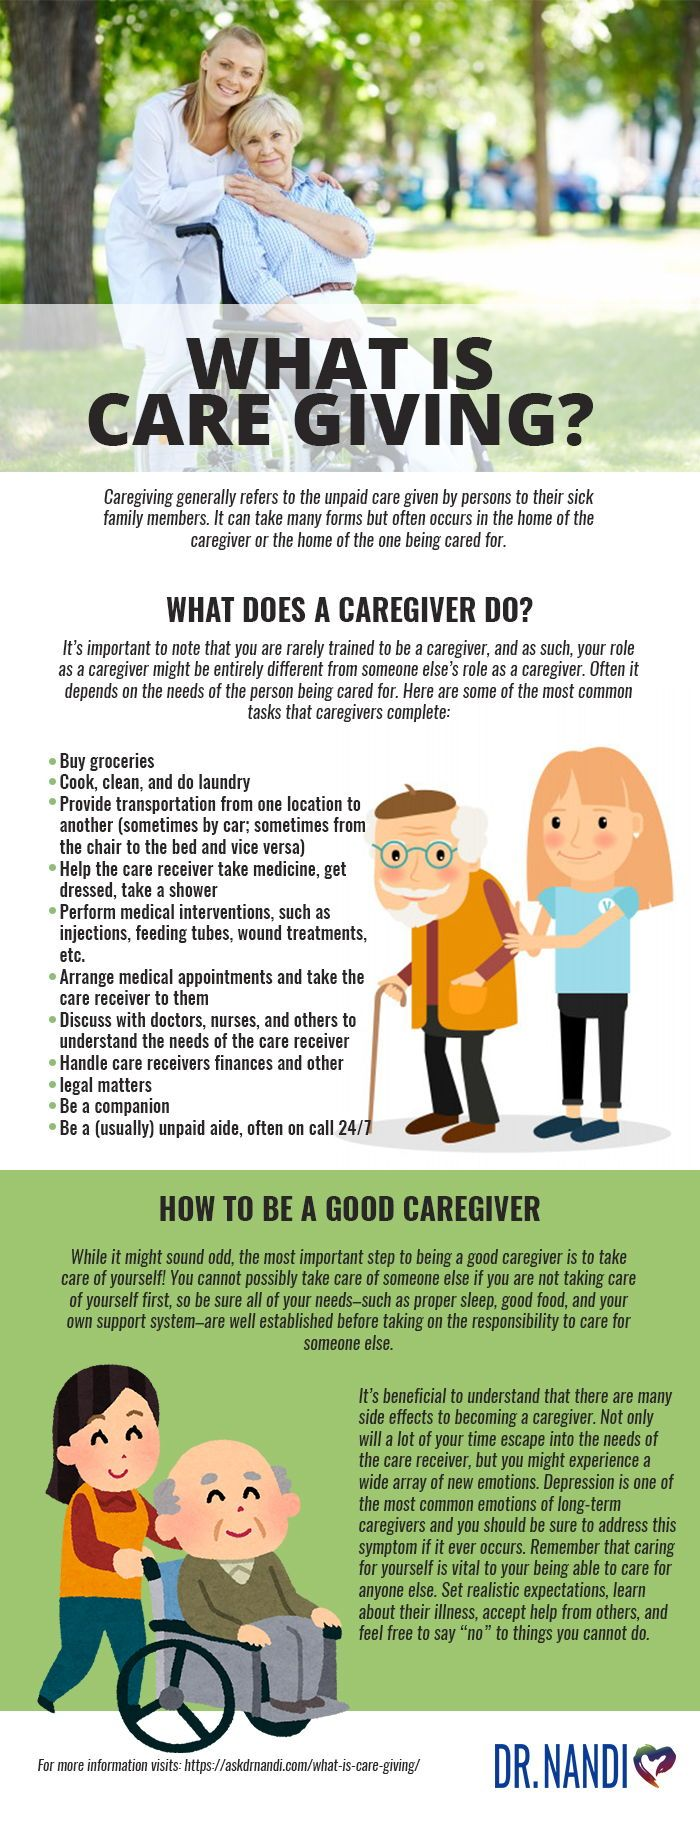 What does it mean to be a caregiver? Healthy lifestyle